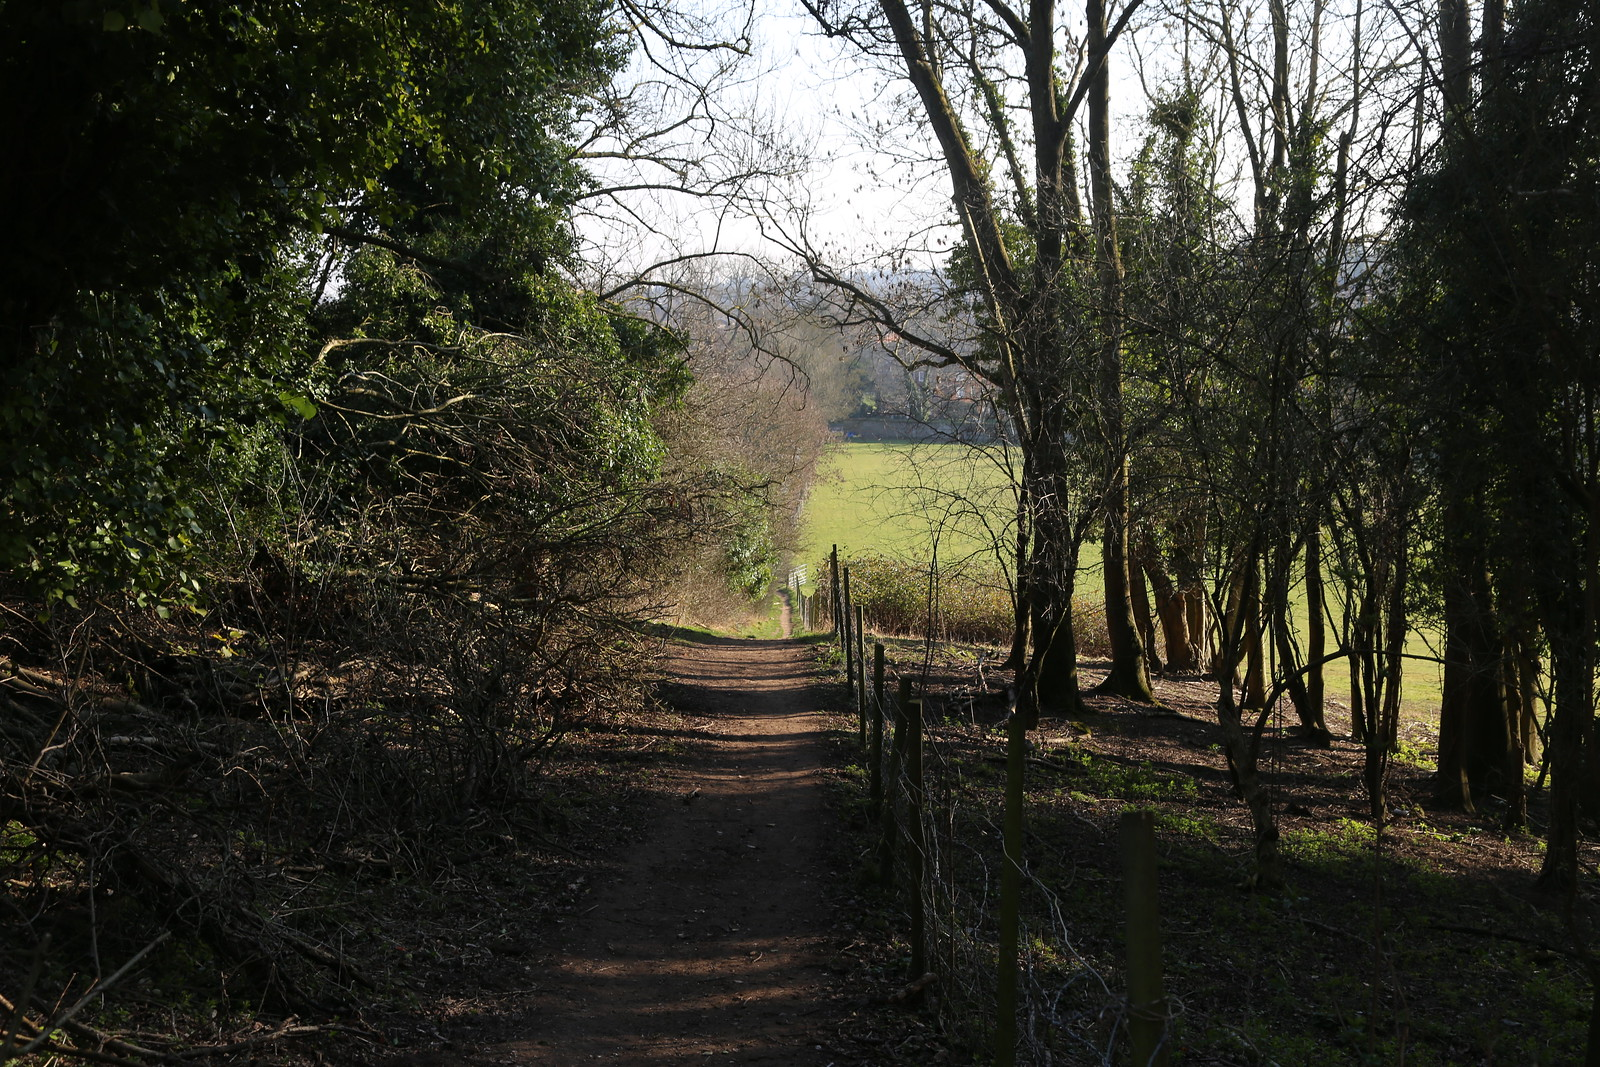 Path by fence - near Henley - North of Henley